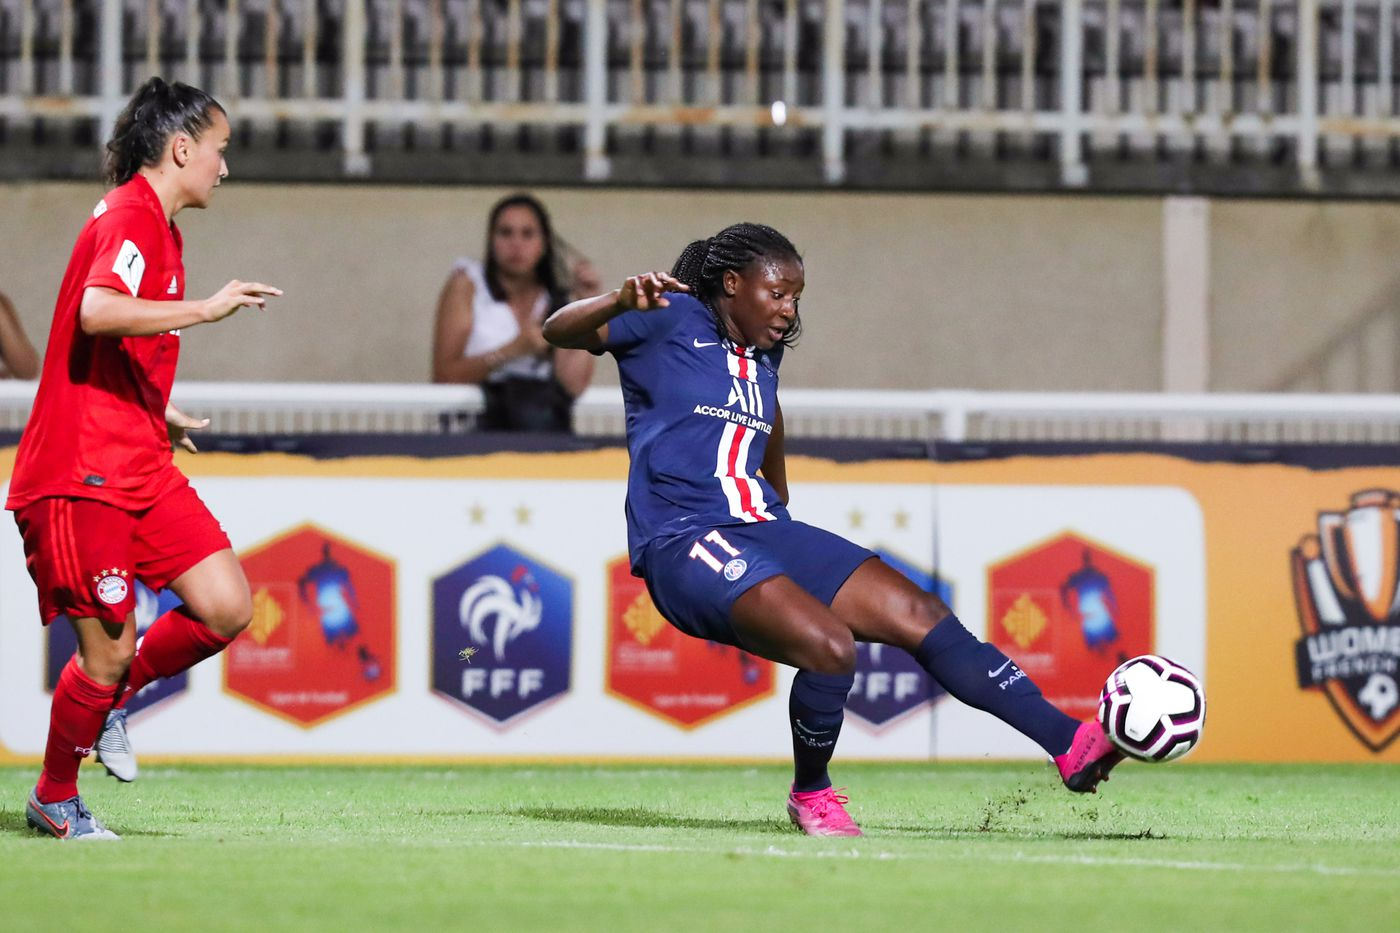 It S Olympique Lyonnais World And The Rest Of Division 1 Feminine Are Just Living In It All For Xi